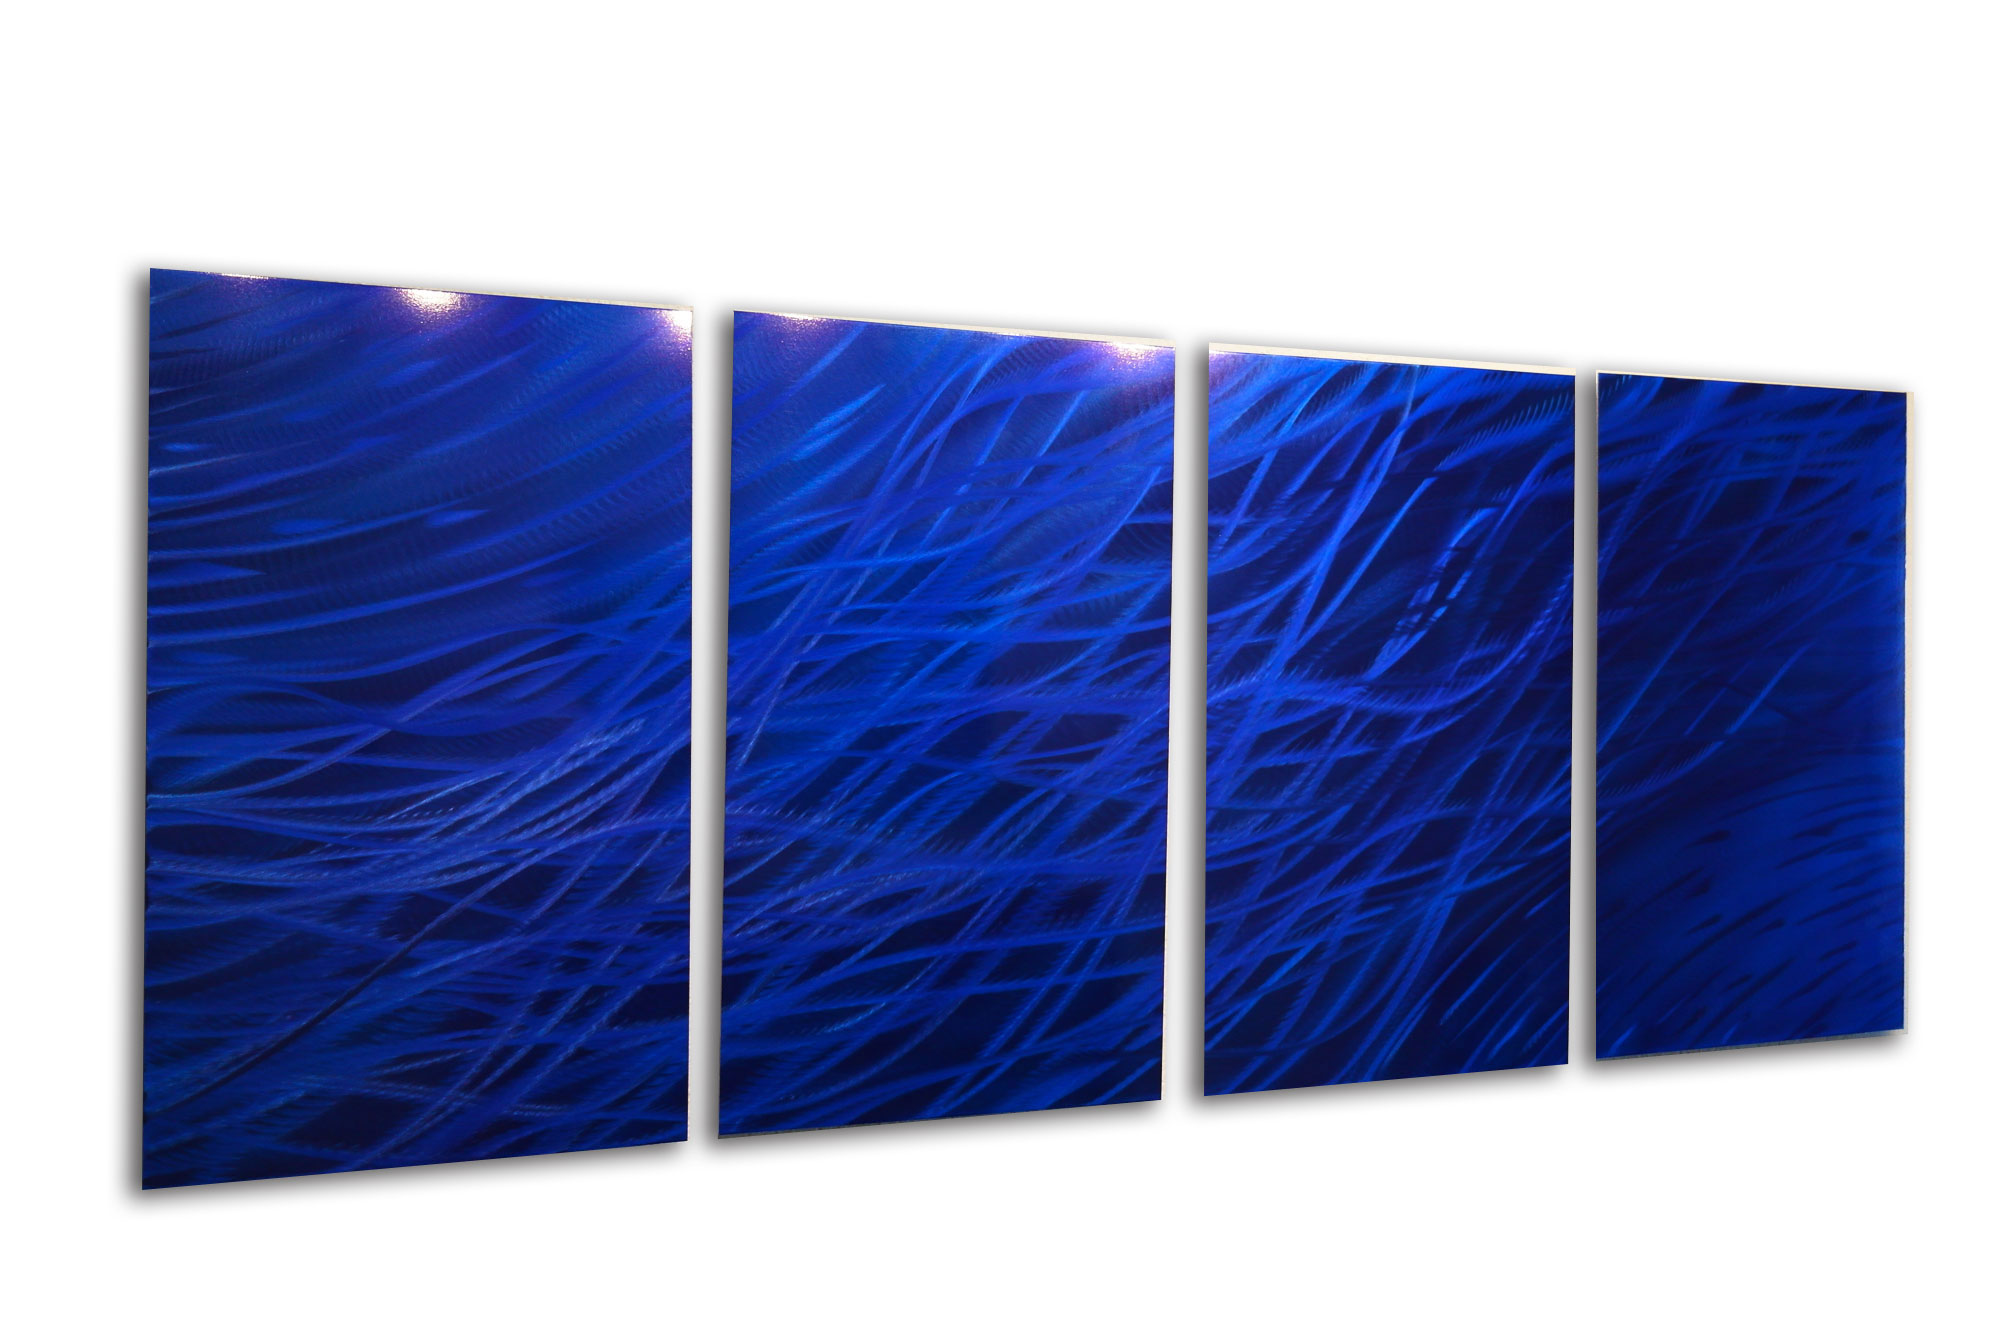 Blue Metal Wall Art ocean dark blue - metal wall art abstract sculpture modern decor